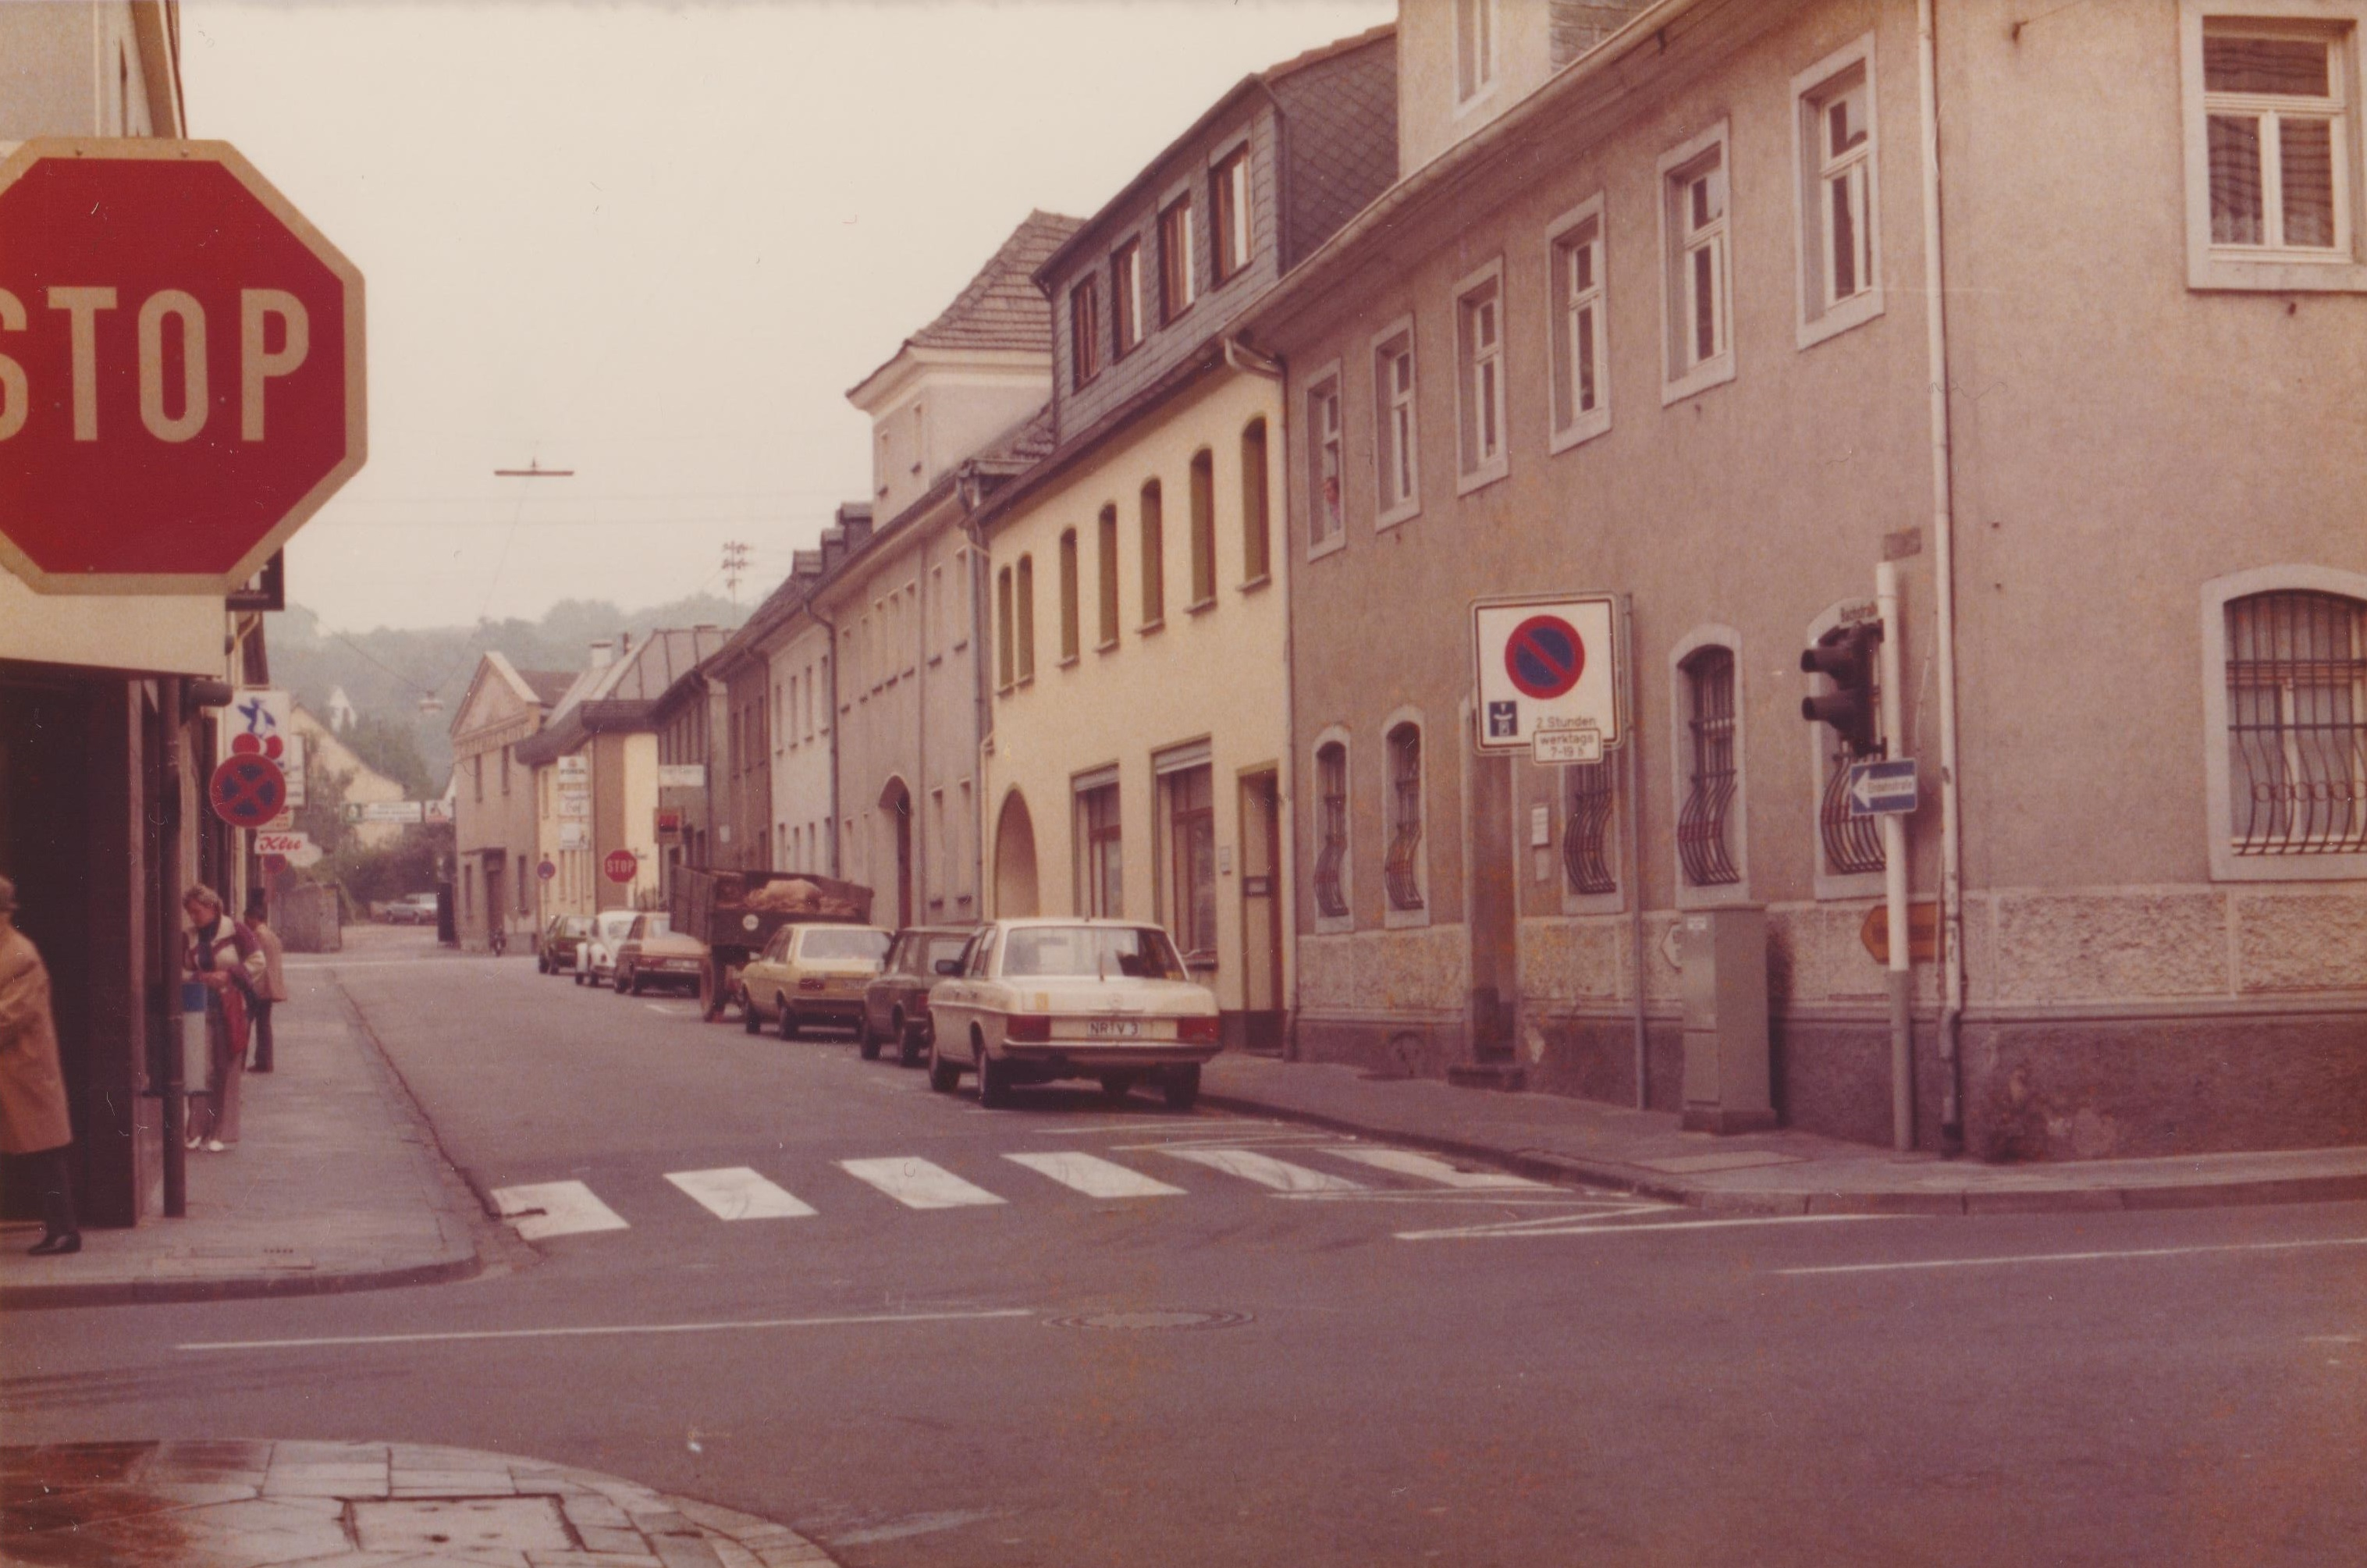 Bachstrasse in Bendorf 1977 (REM CC BY-NC-SA)